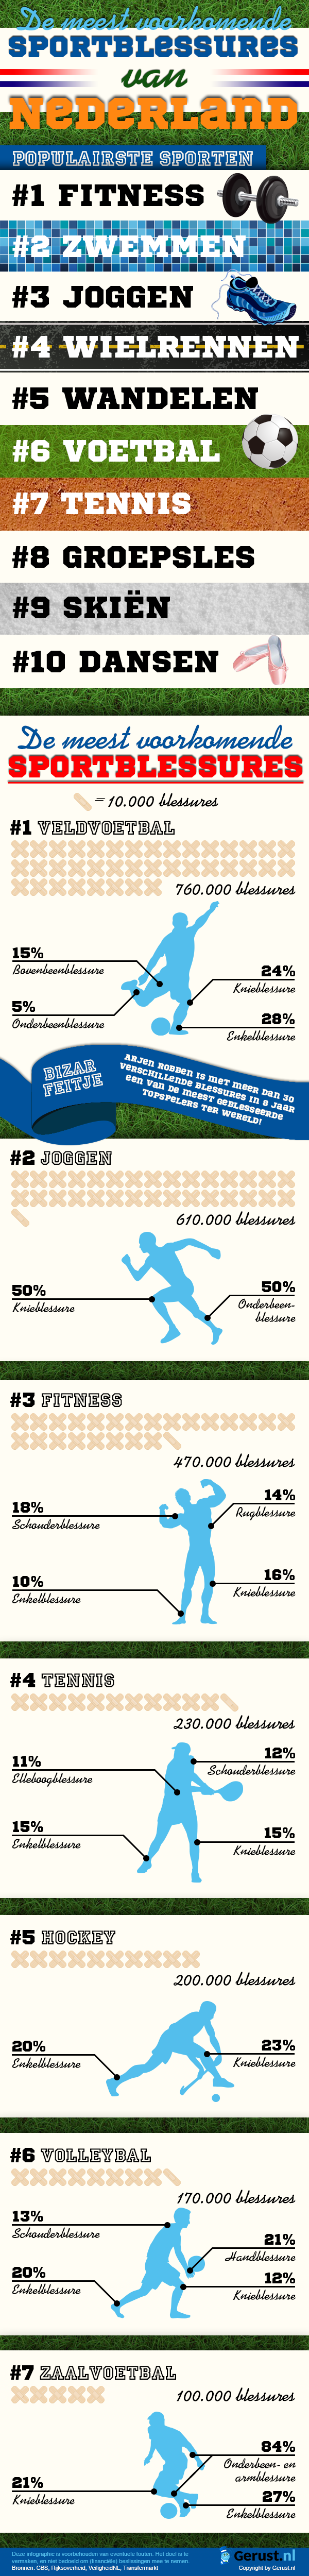 [Infographic Sportblessures]